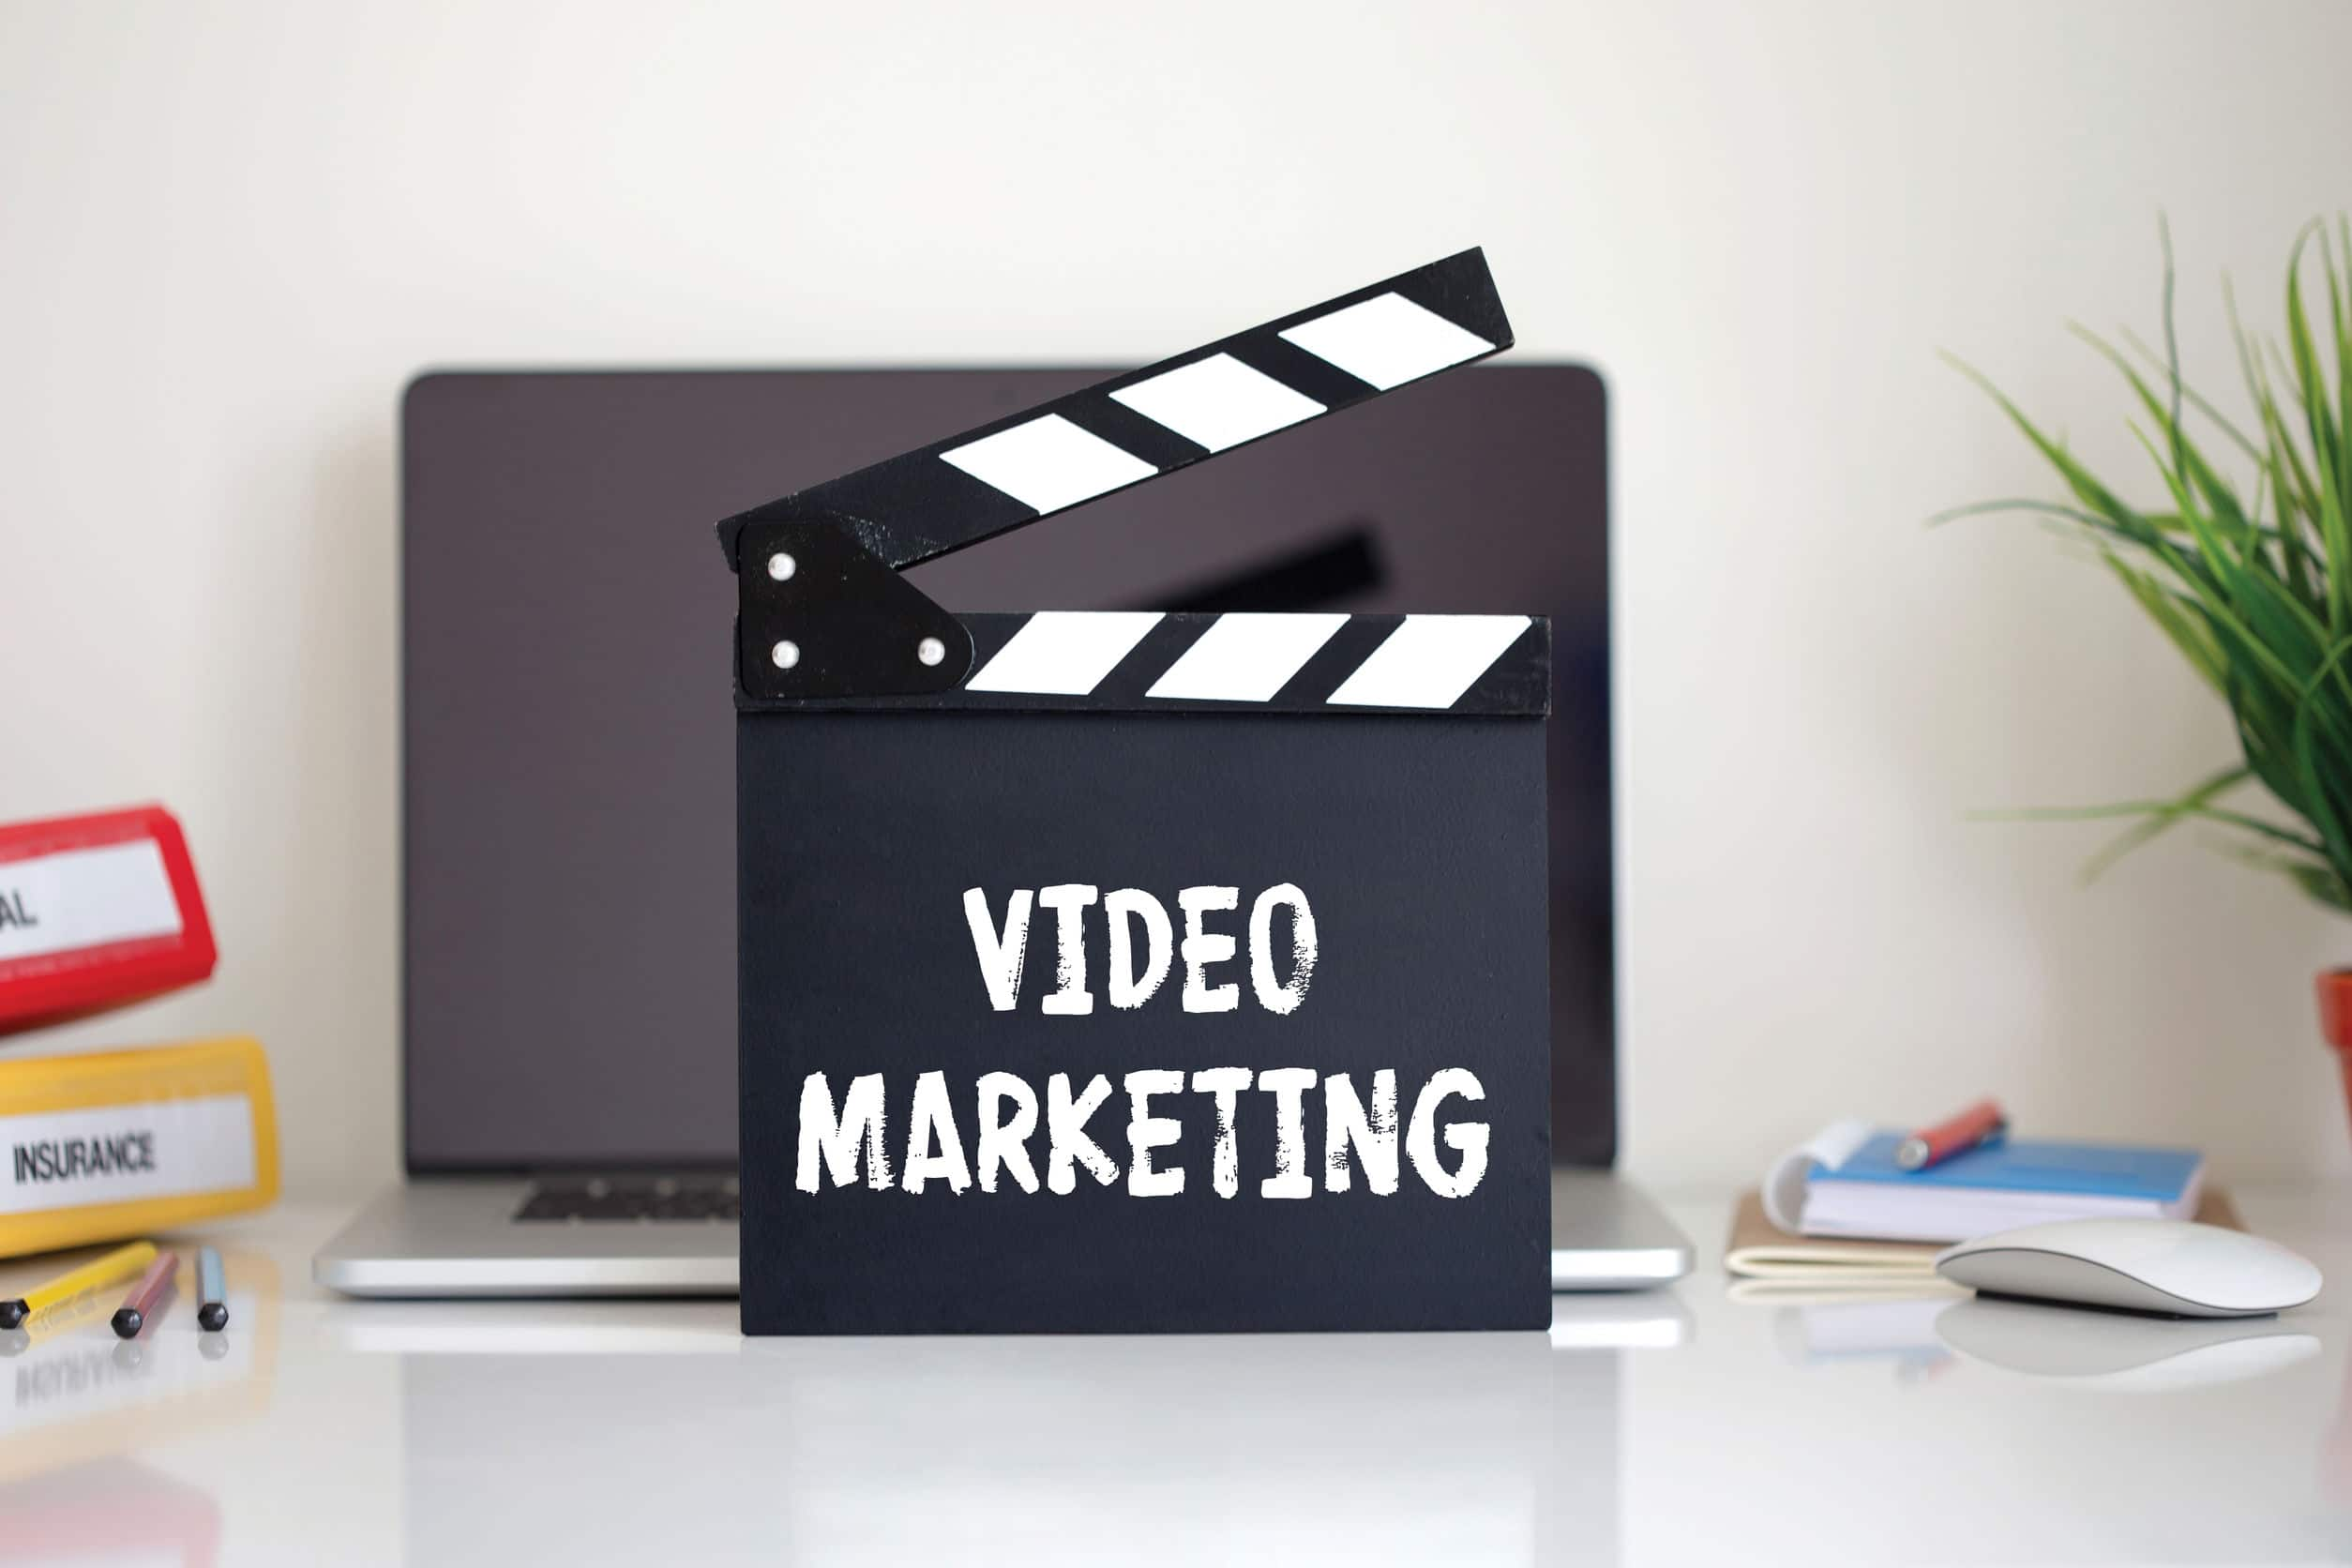 Tips on How to Improve Your Video Marketing Success